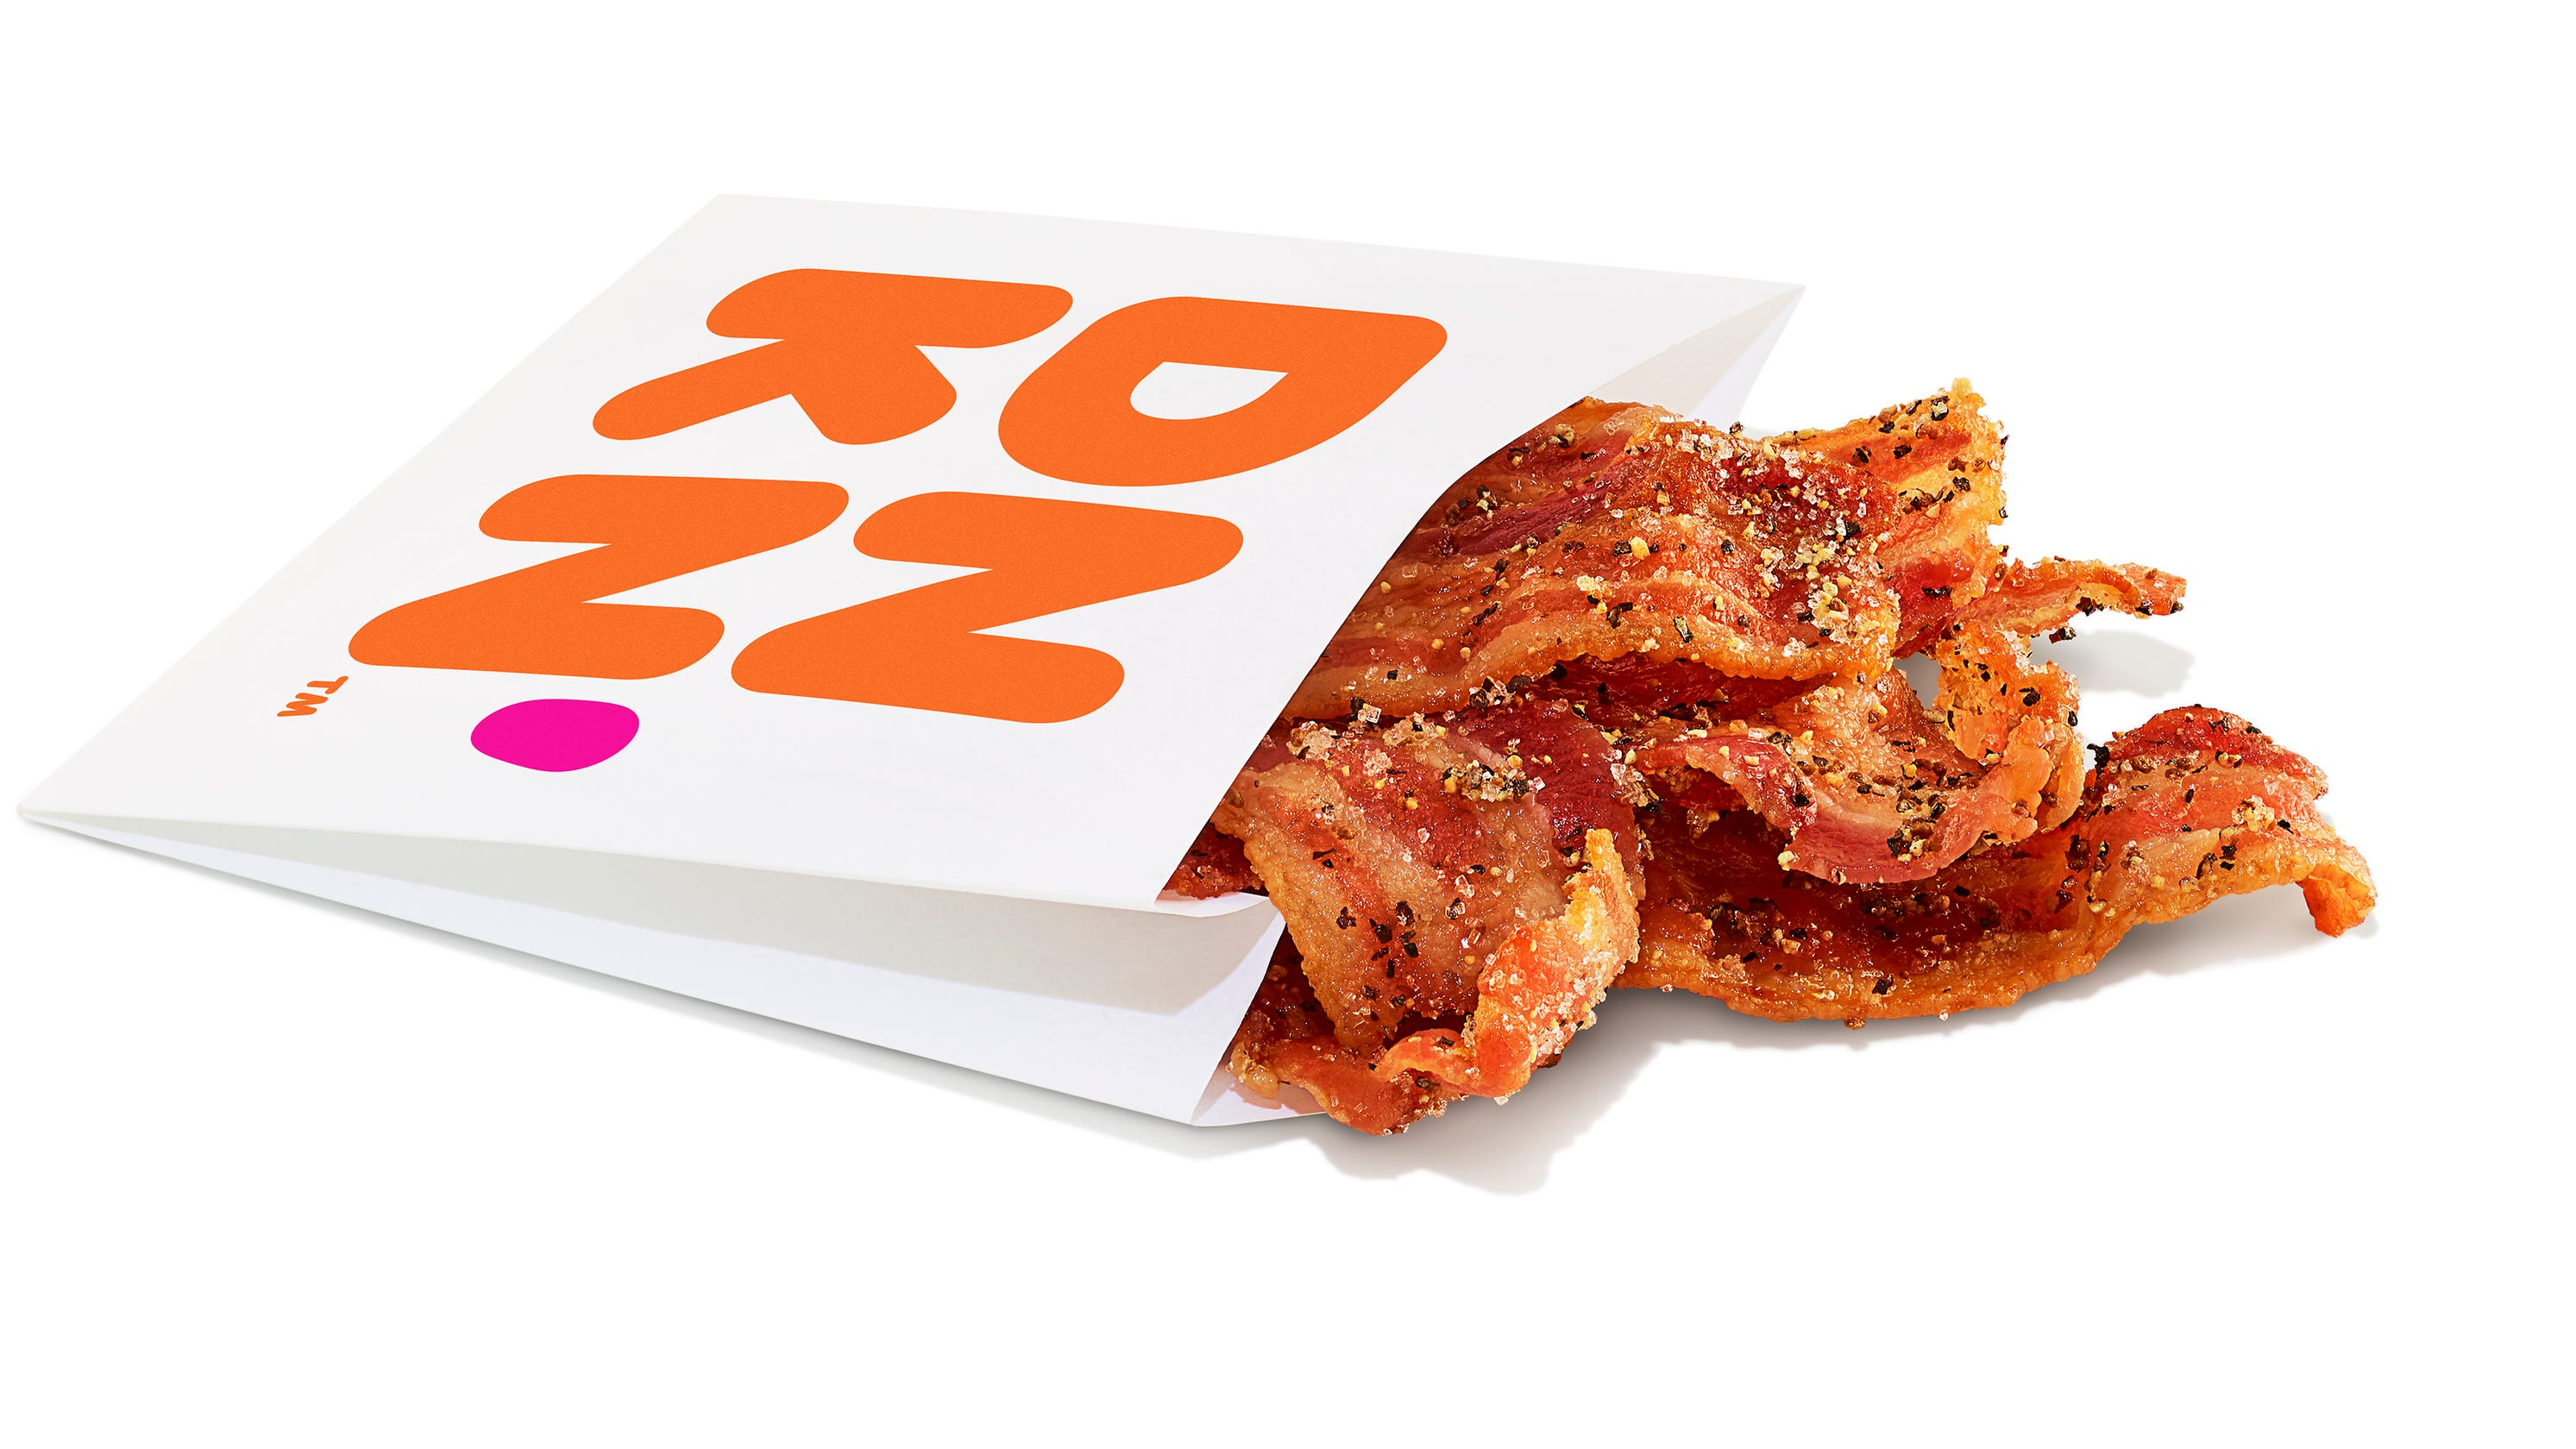 Pork yeah: Dunkin' Donuts debuts bacon strip snack sleeves